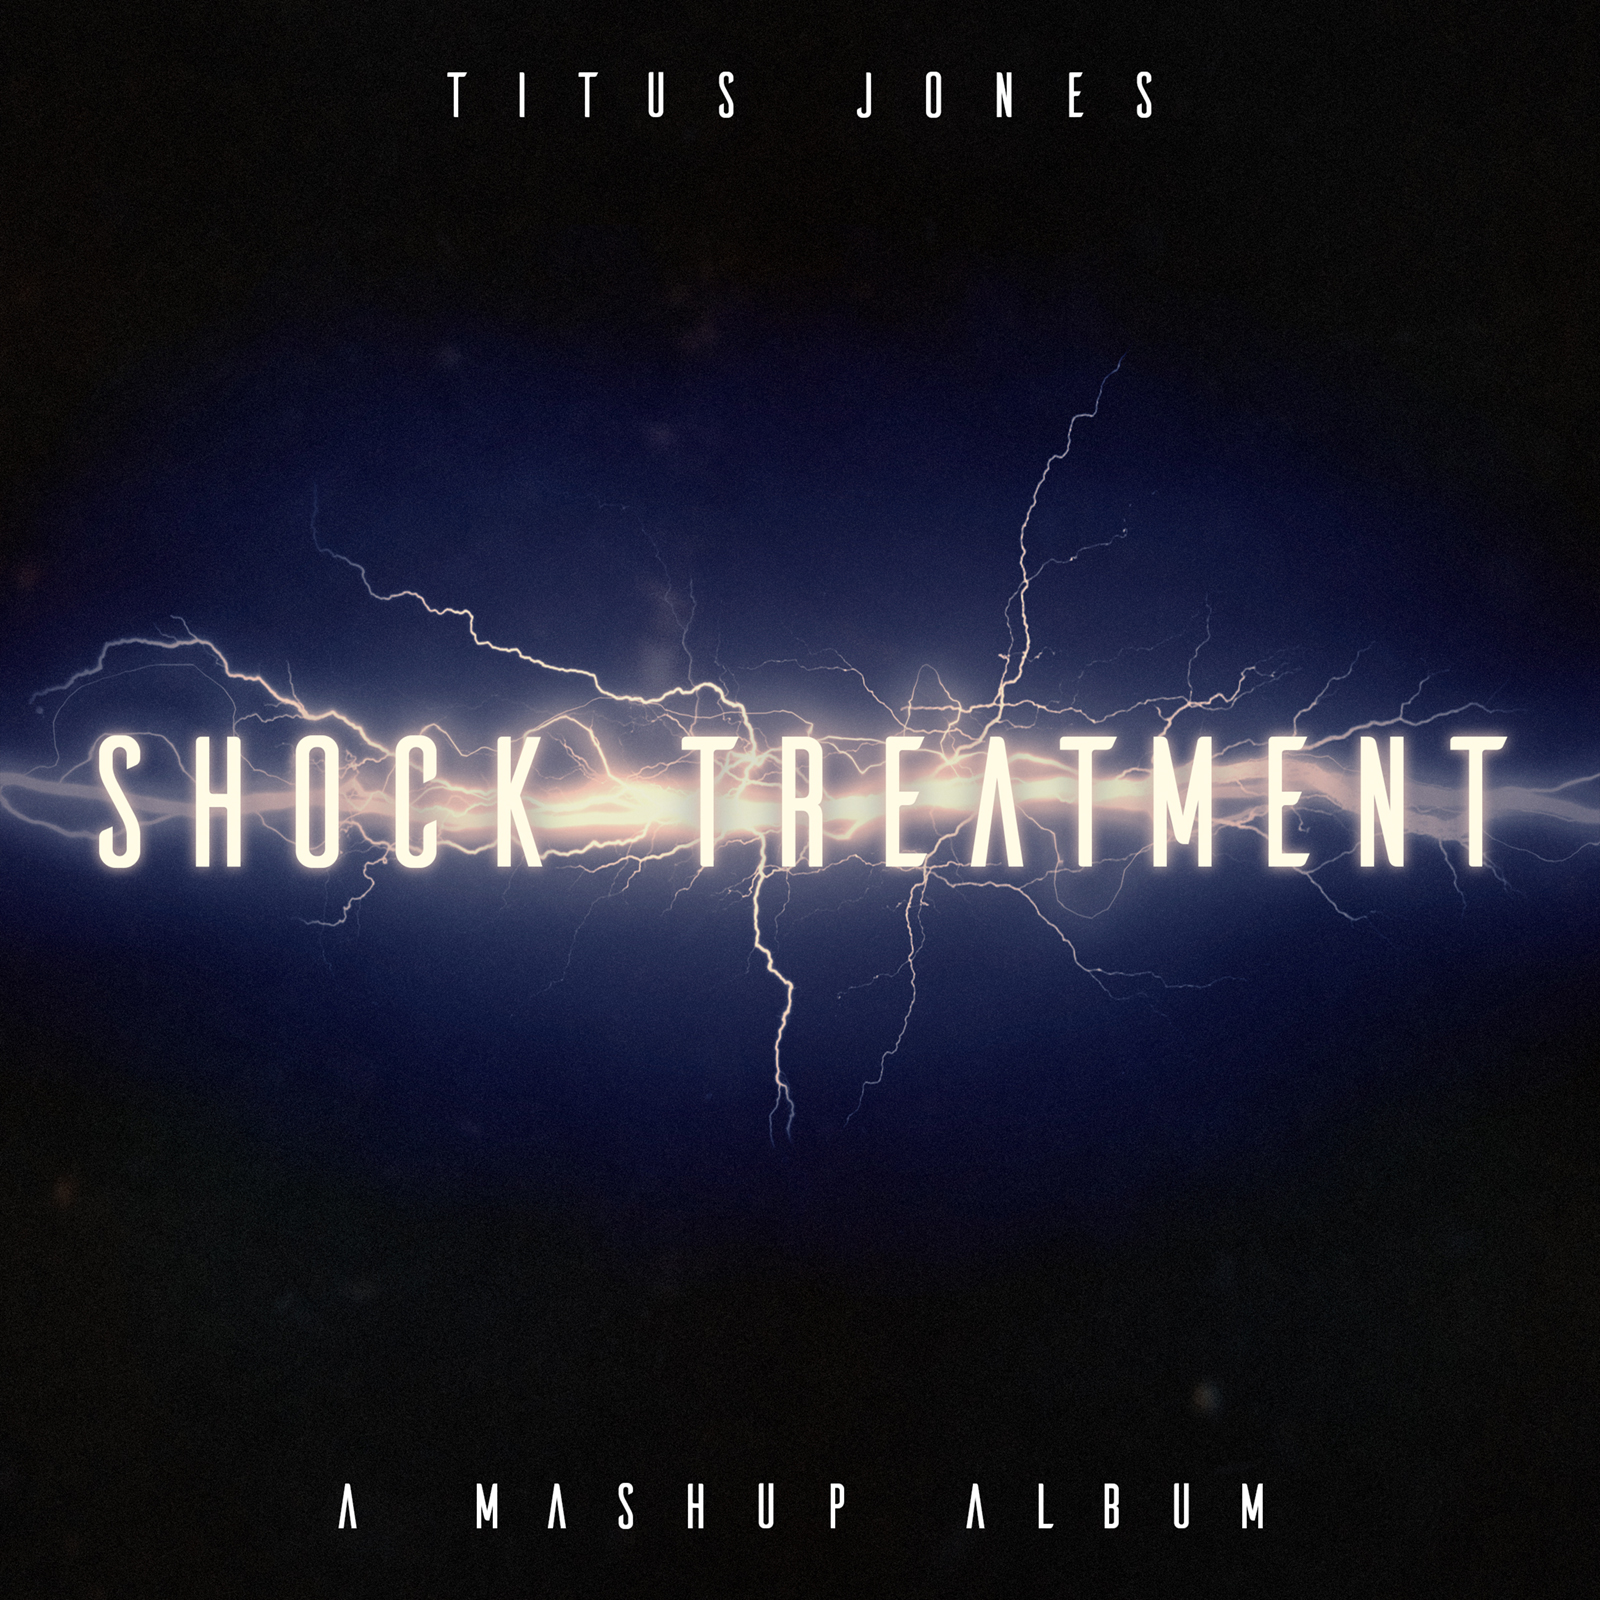 Titus Jones - Shock Treatment (Full Mix) [01:08:24]